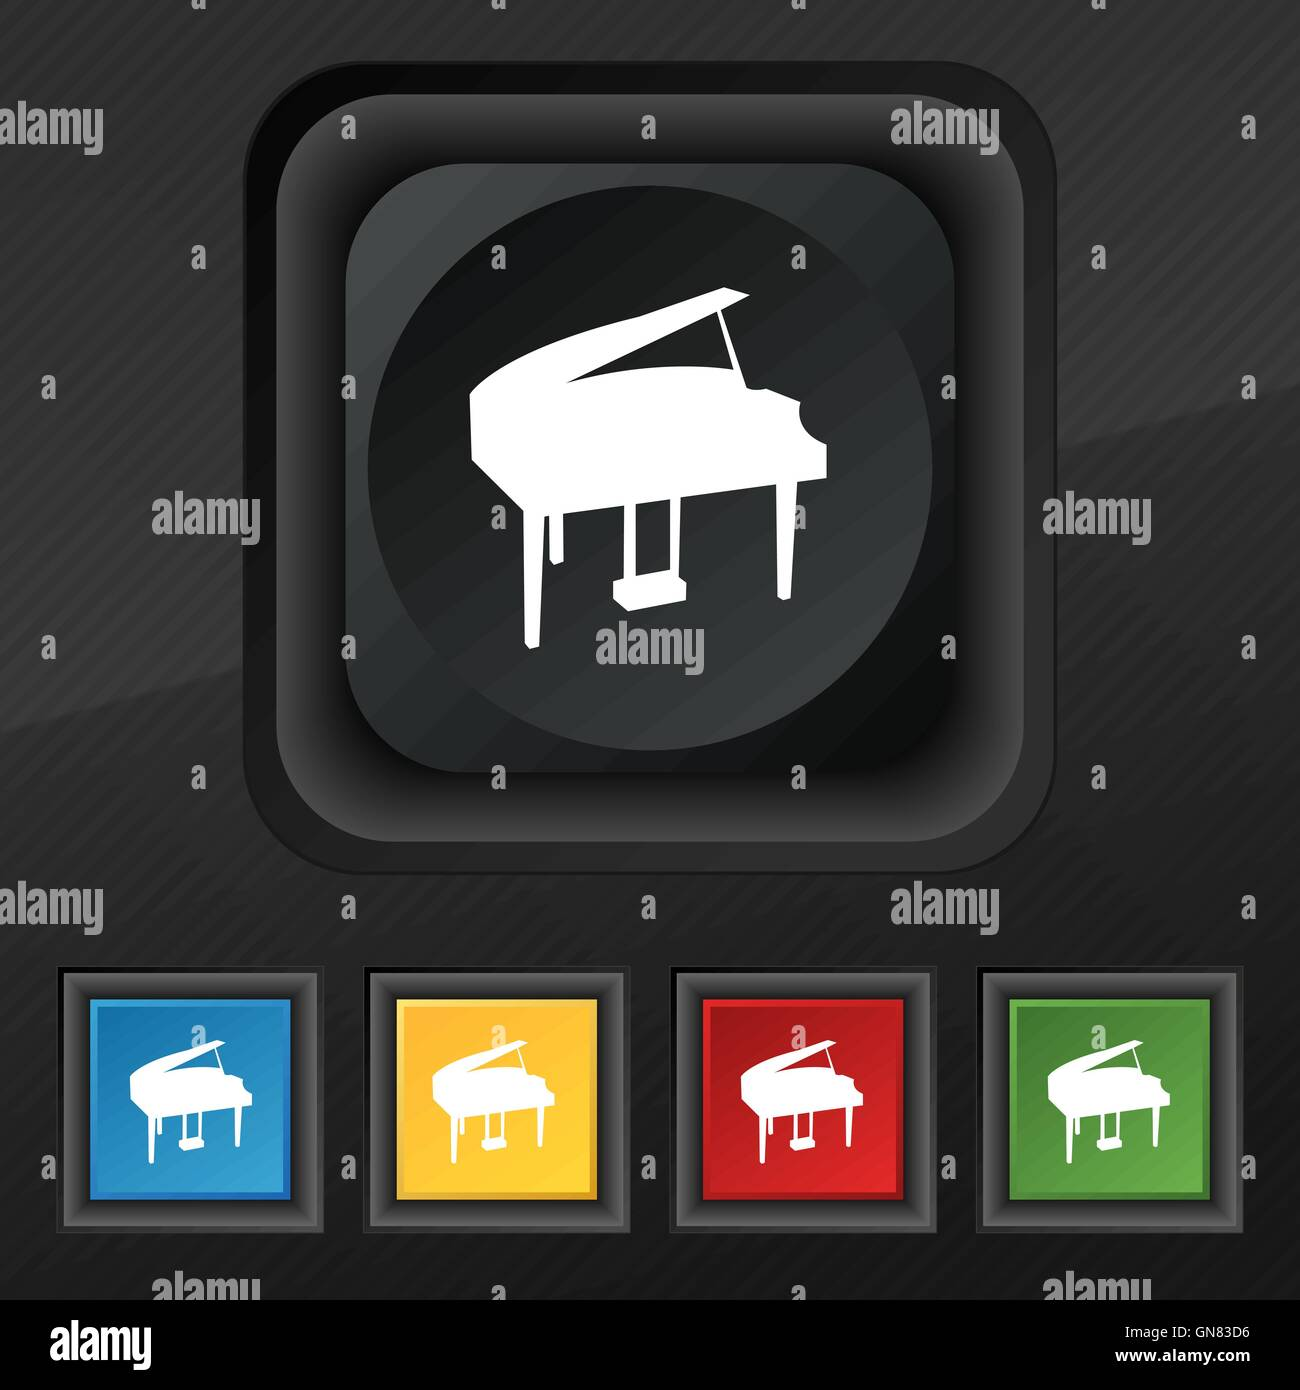 Grand Piano Icon Symbol Set Of Five Colorful Stylish Buttons On Black Texture For